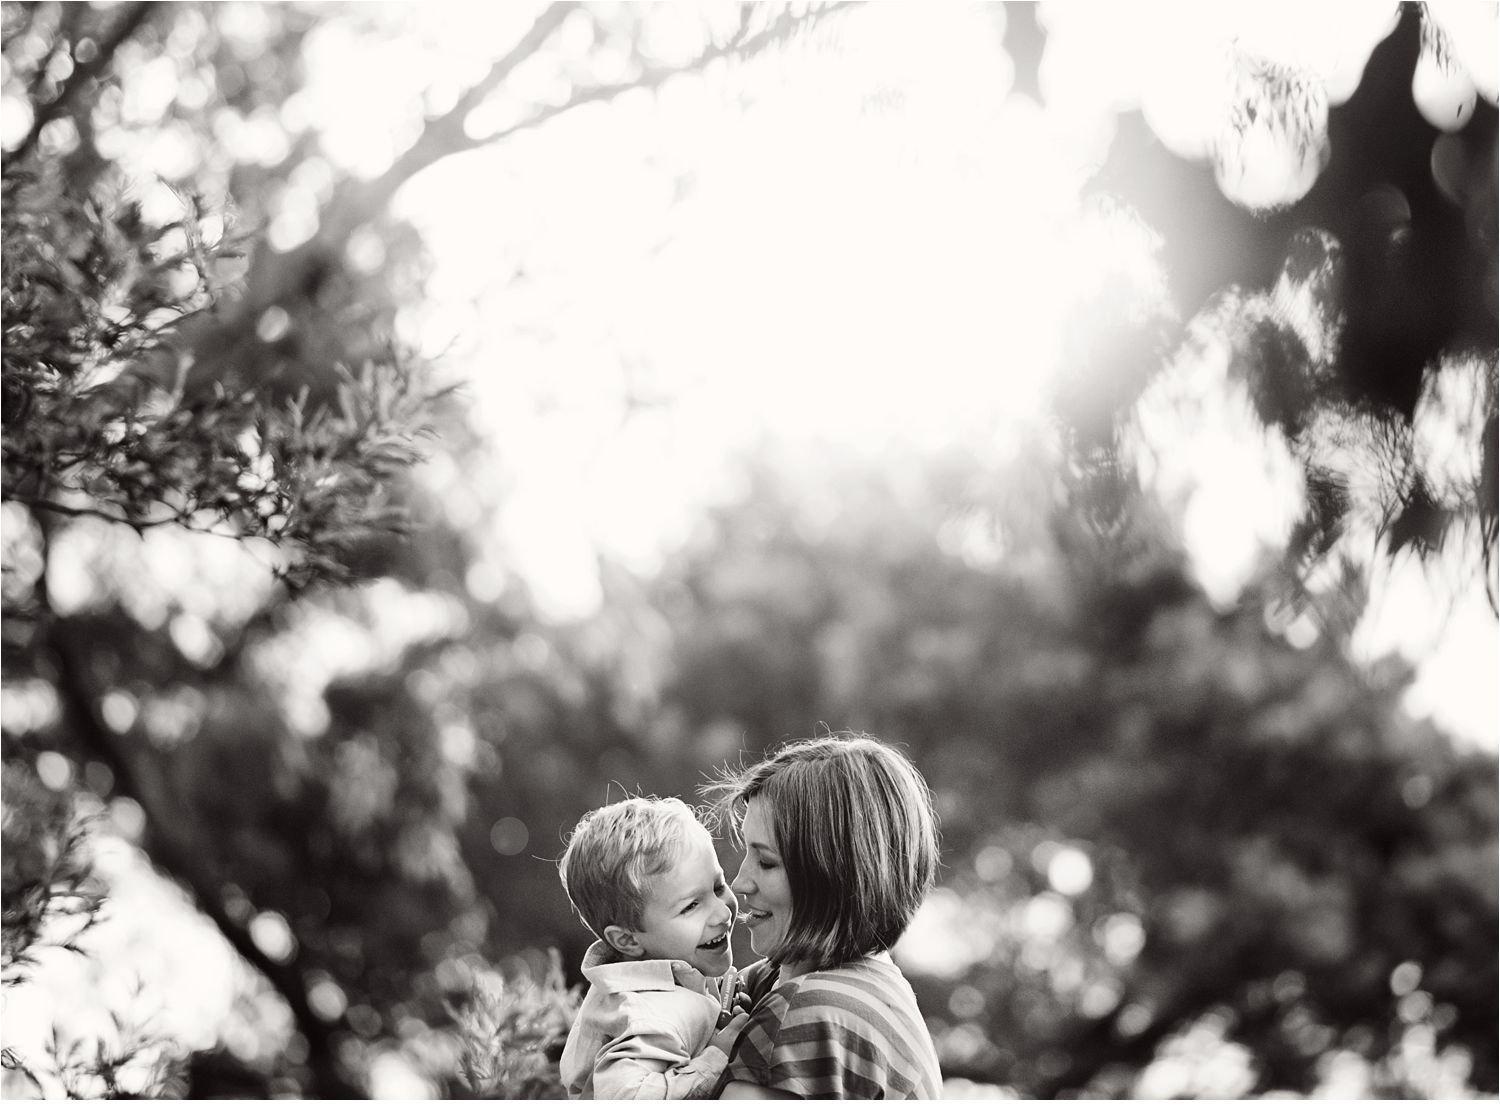 Bec-Stewart-Family-and-children-Lifestyle-Photographer-city-of-casey-melbourne-3.jpg